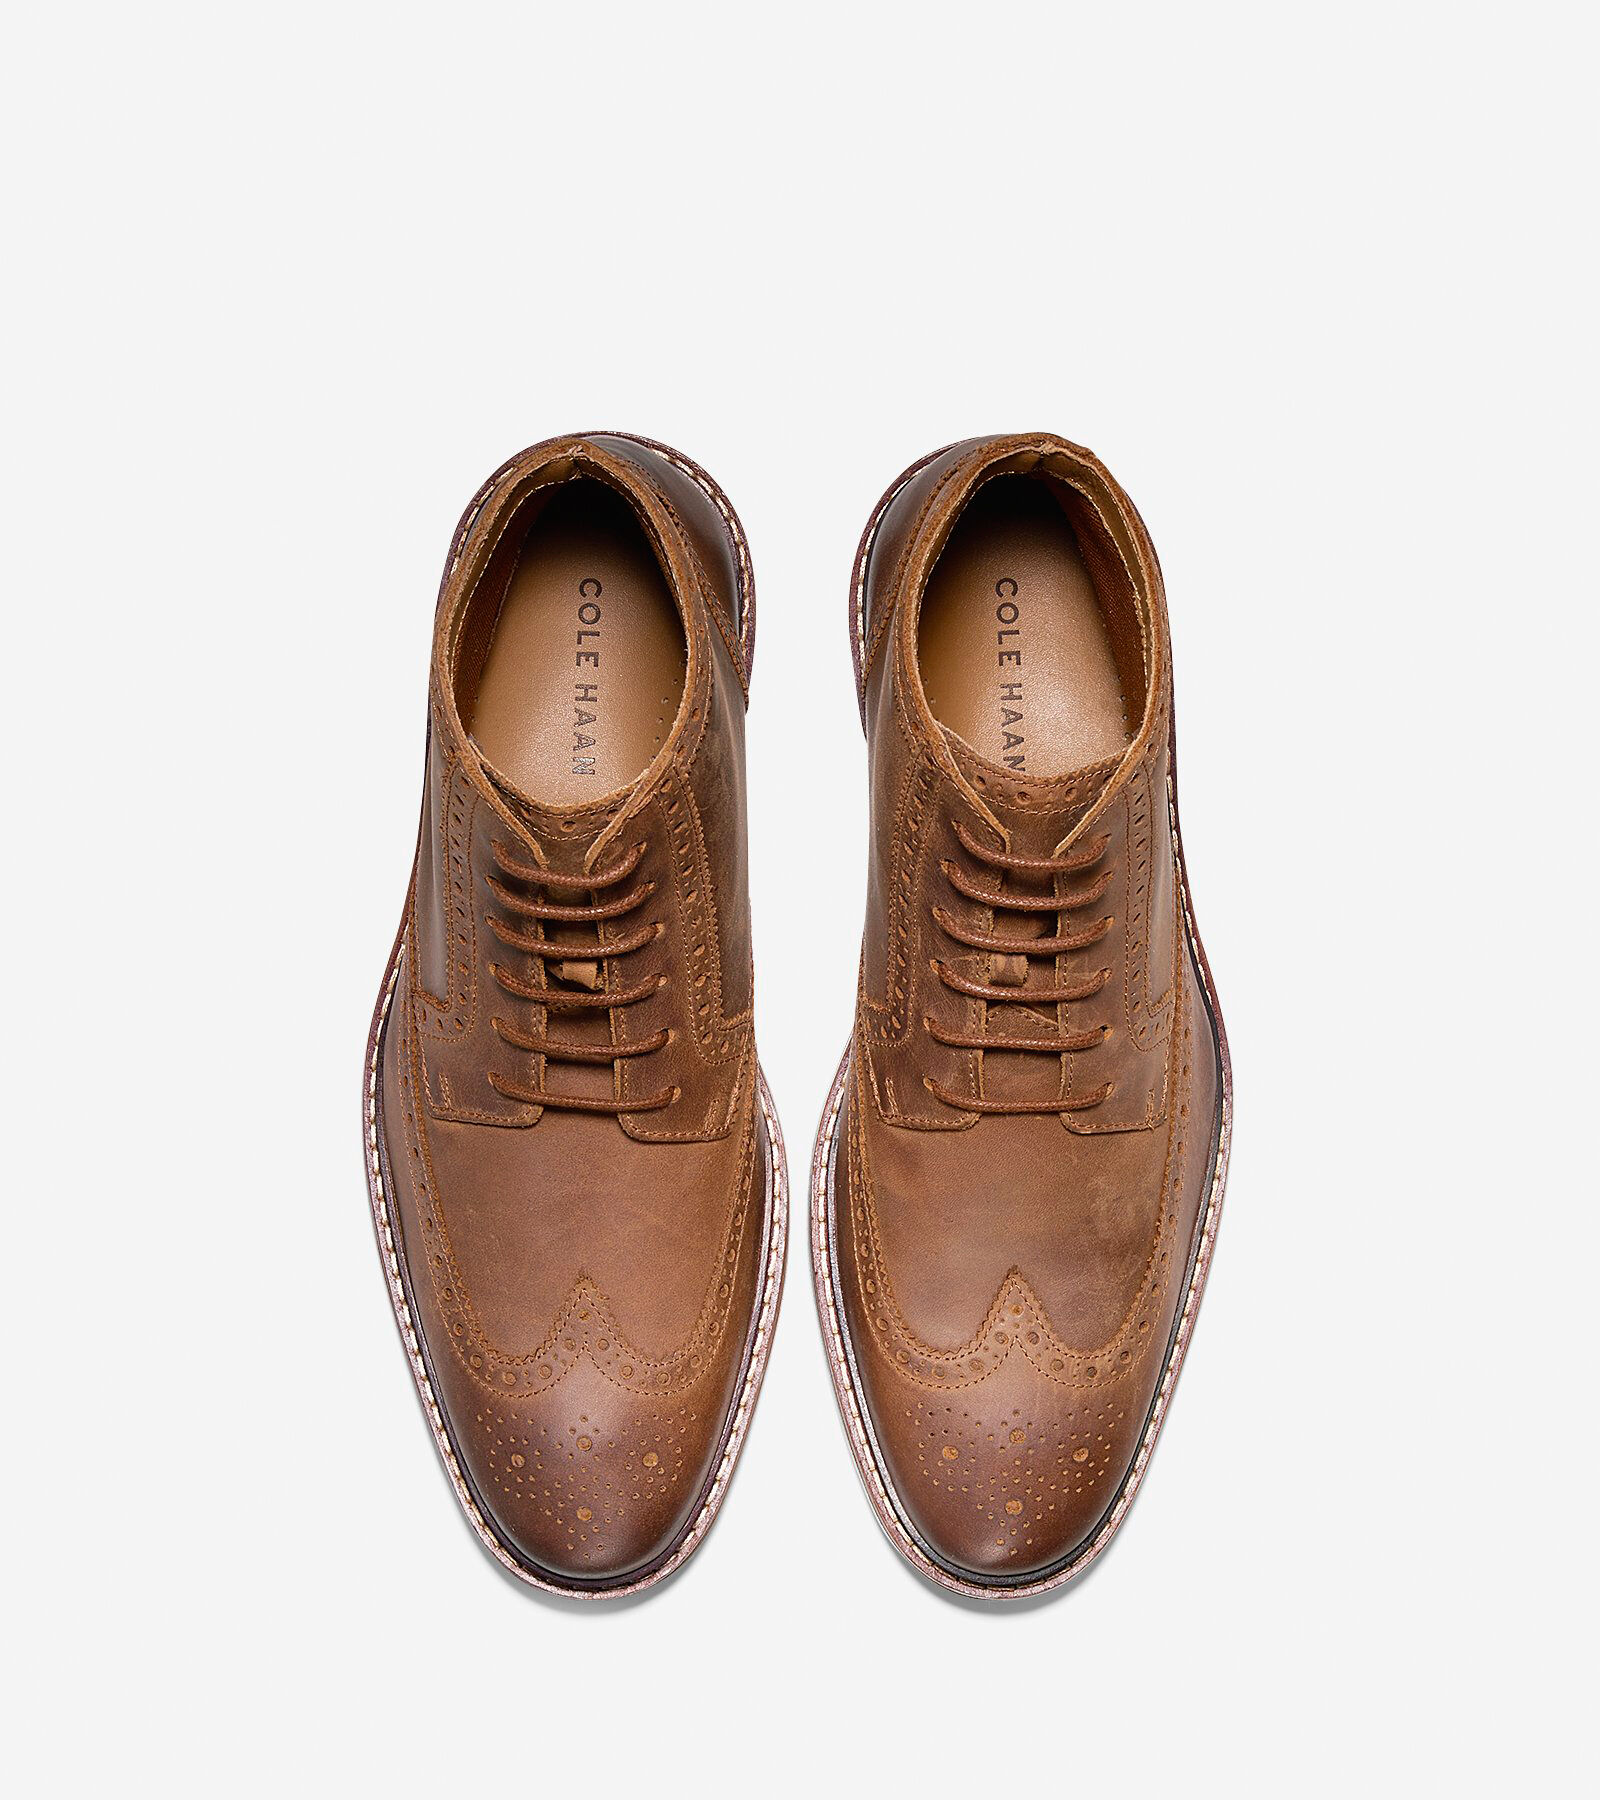 Williams Welt Boot; Williams Welt Boot; Williams Welt Boot; Williams Welt  Boot. #colehaan